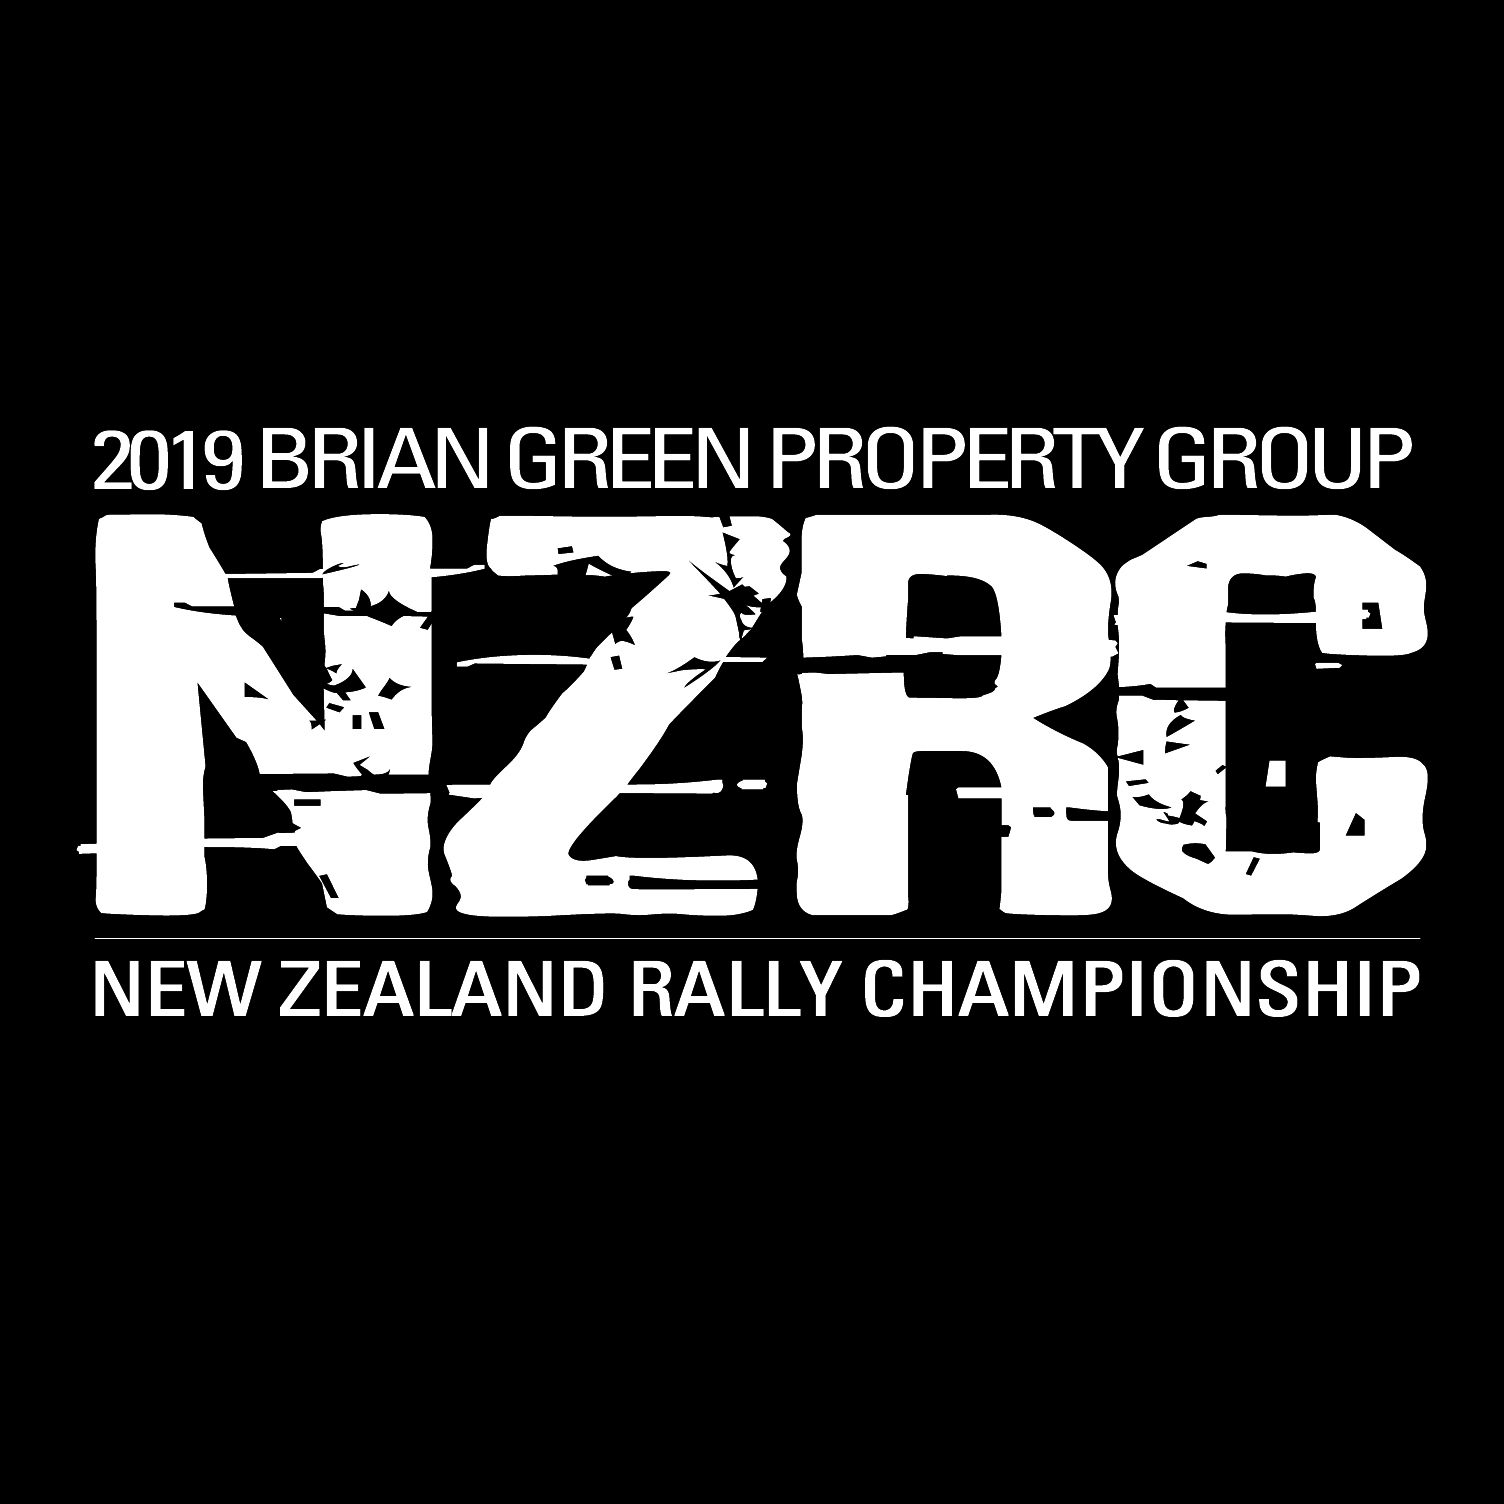 Challenging finale to National Rally Championship | :: Brian Green Property Group New Zealand Rally Championship ::